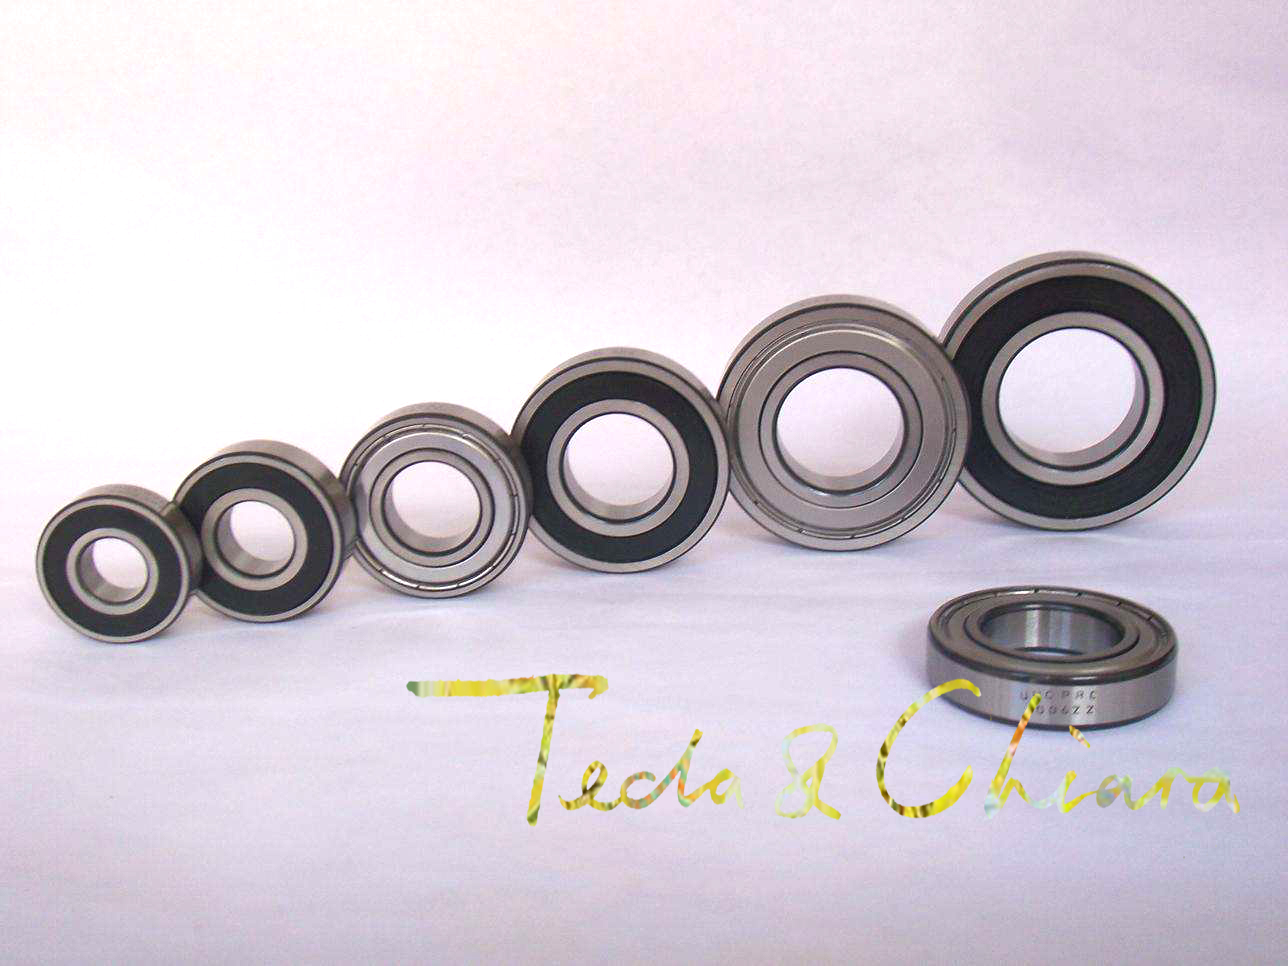 R8 R8ZZ R8RS R8-2Z R8Z R8-2RS ZZ RS RZ 2RZ Deep Groove Ball Bearings 12.7 X 28.575 X 7.938mm 1/2